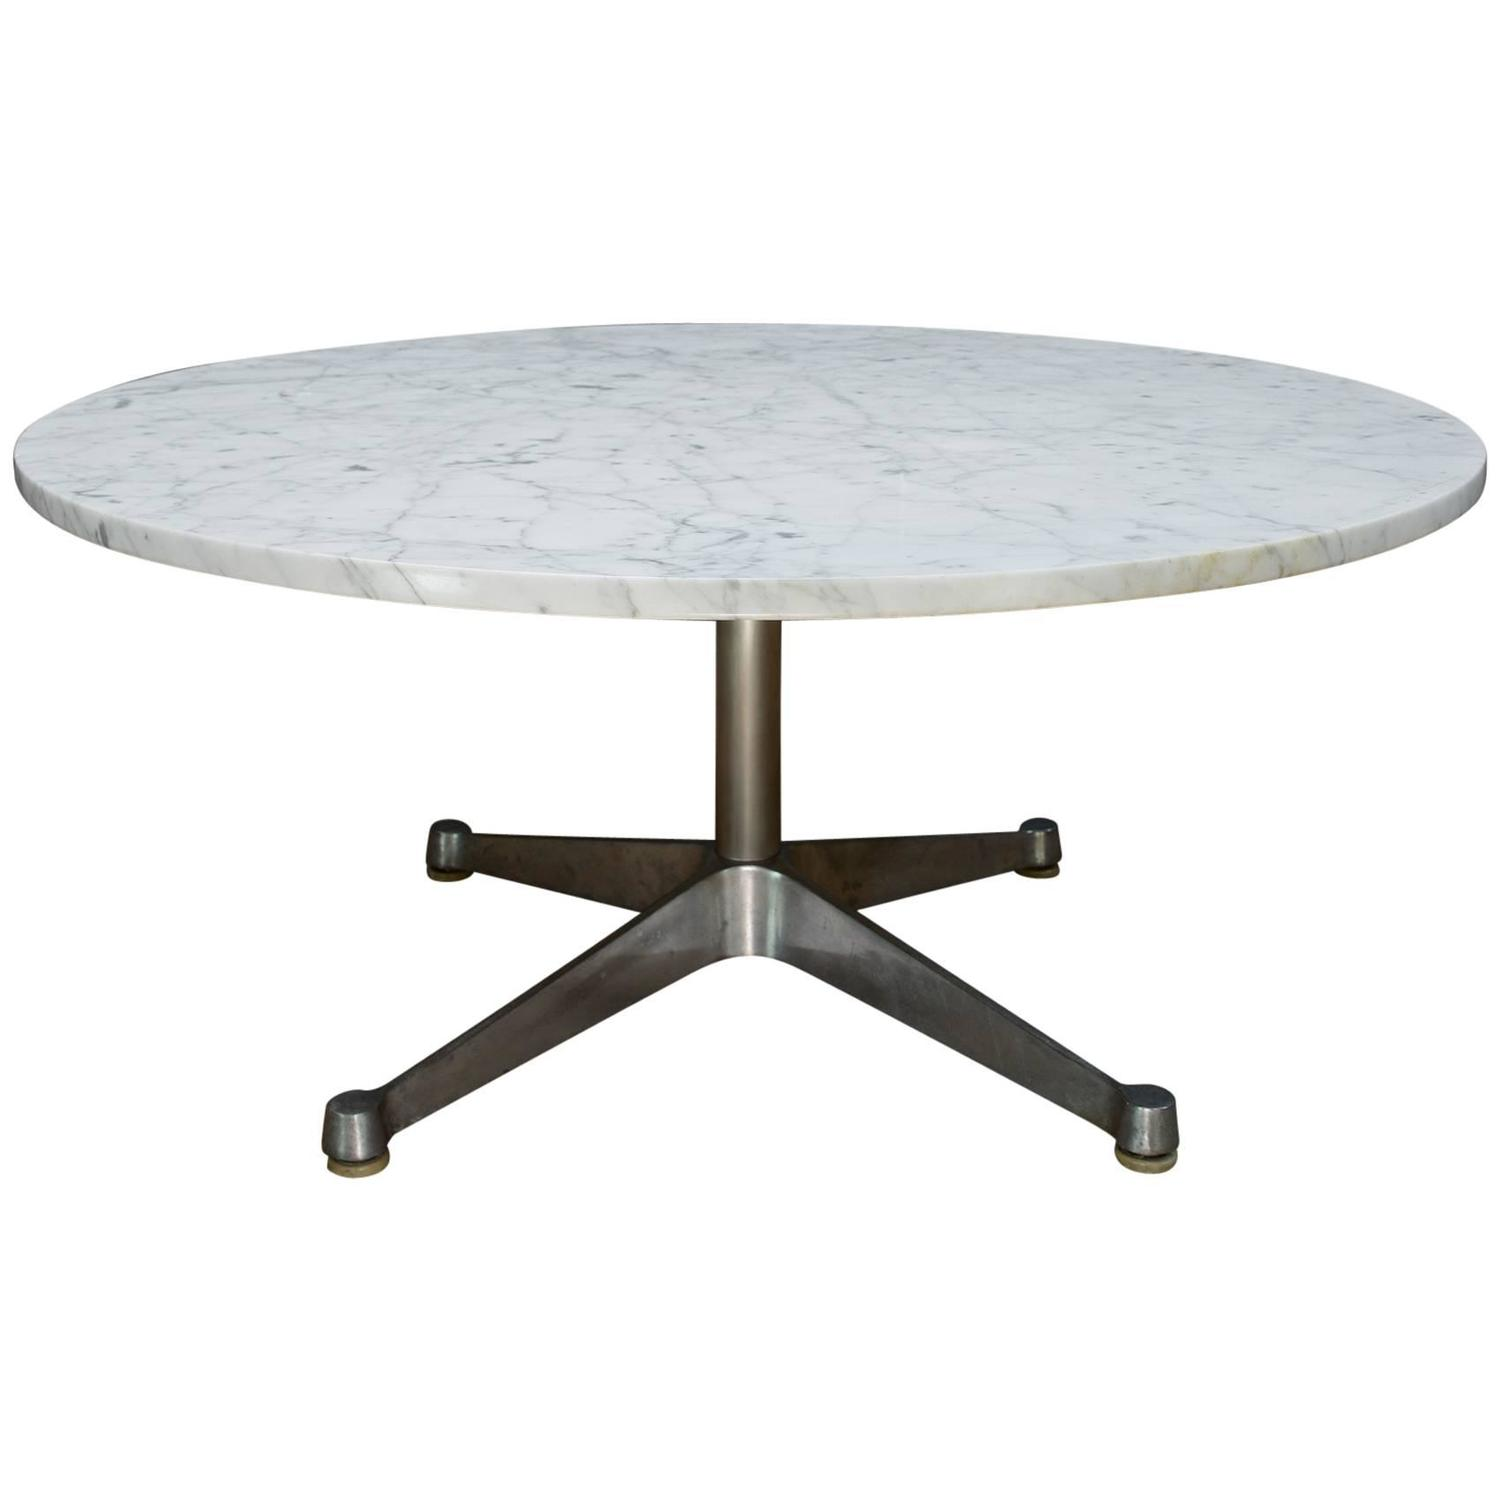 Eames Herman Miller Carrara Marble Cocktail Table at 1stdibs